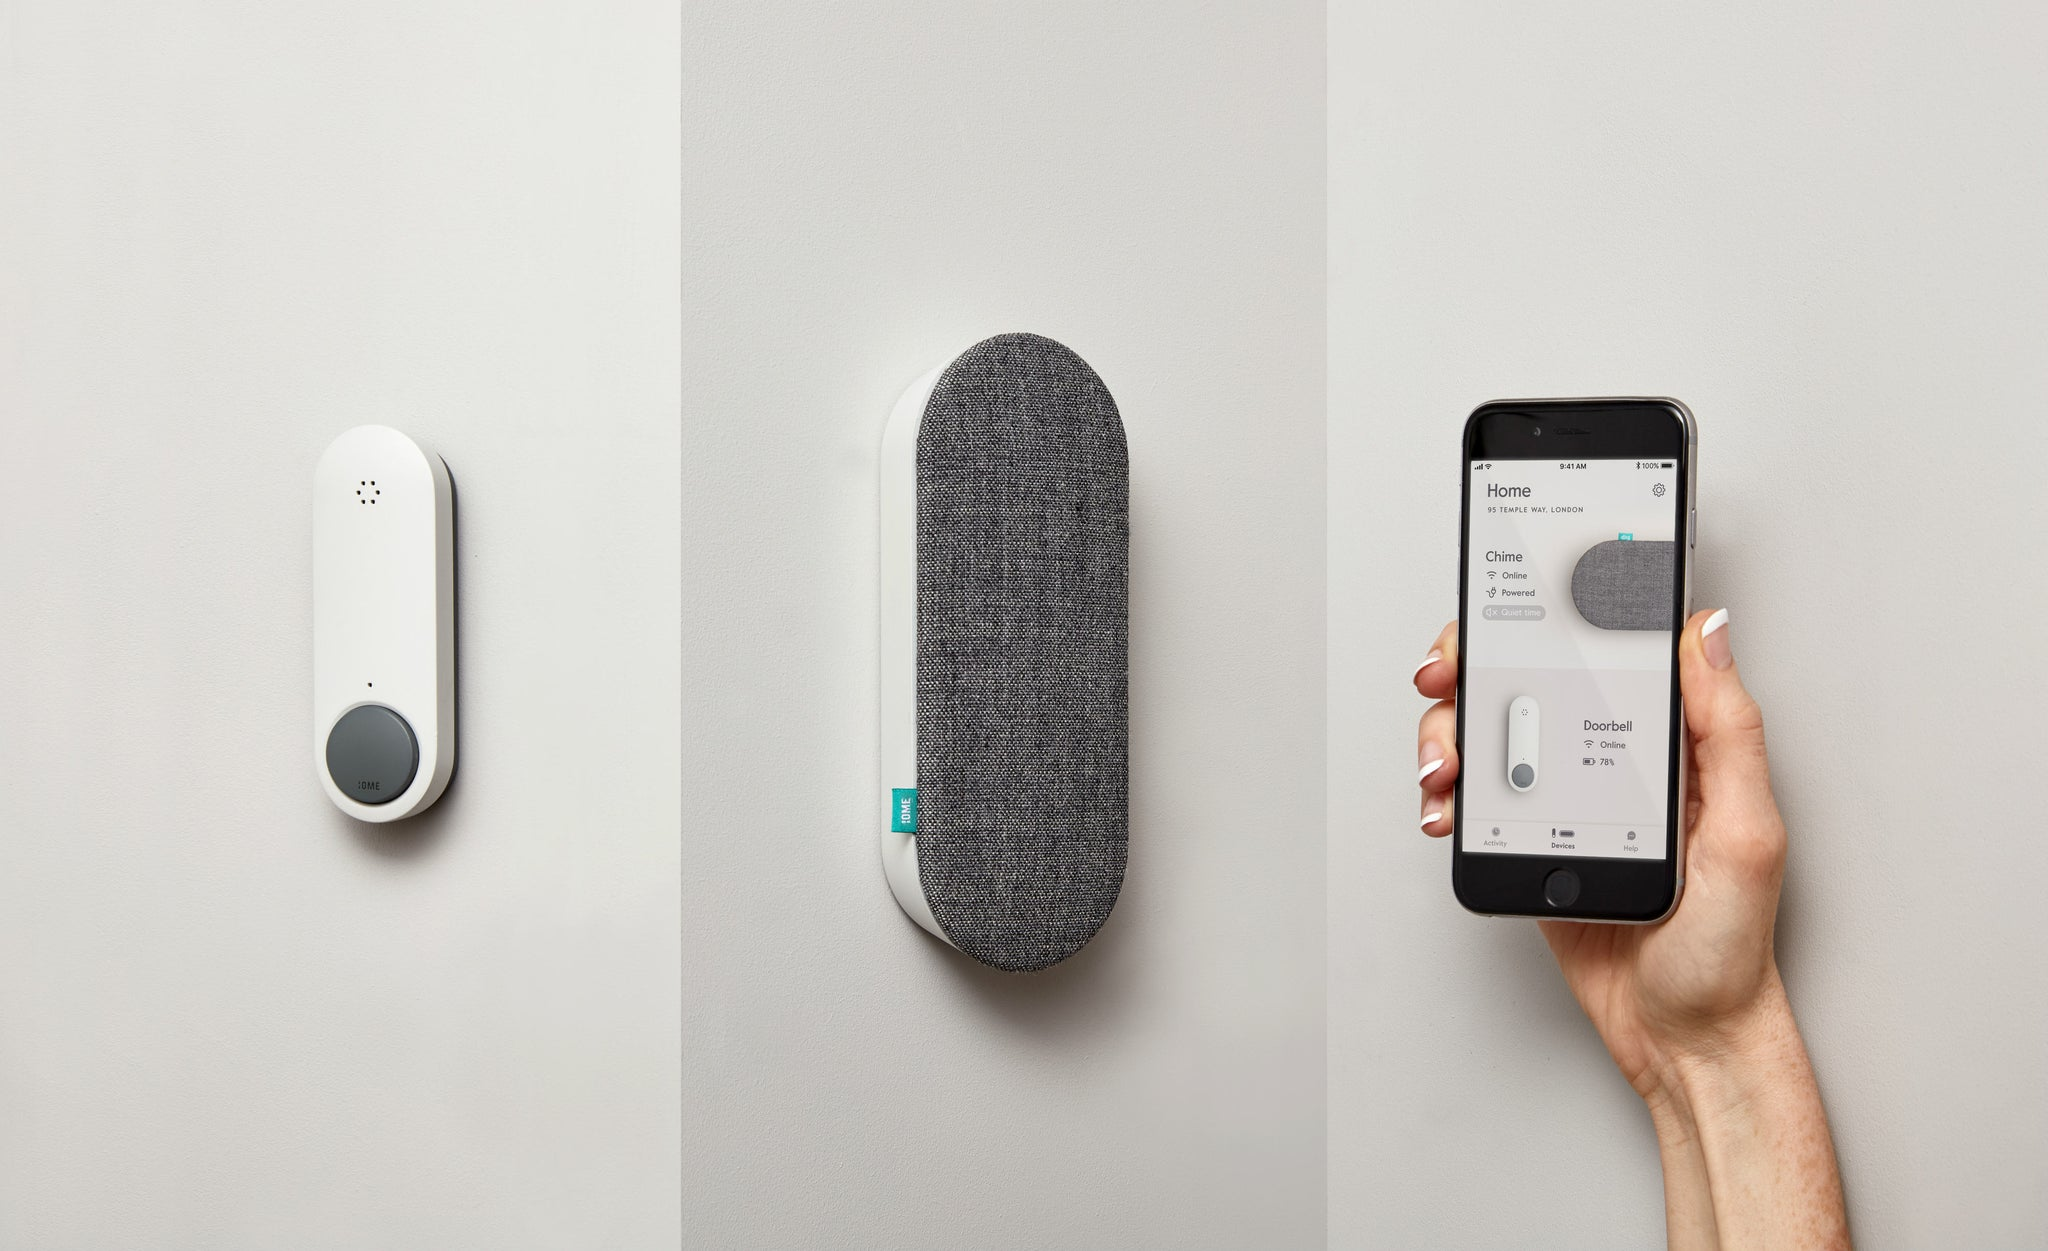 Ome Smart Doorbell, Chime and the Ome Smart Doorbell App on a Smartphone